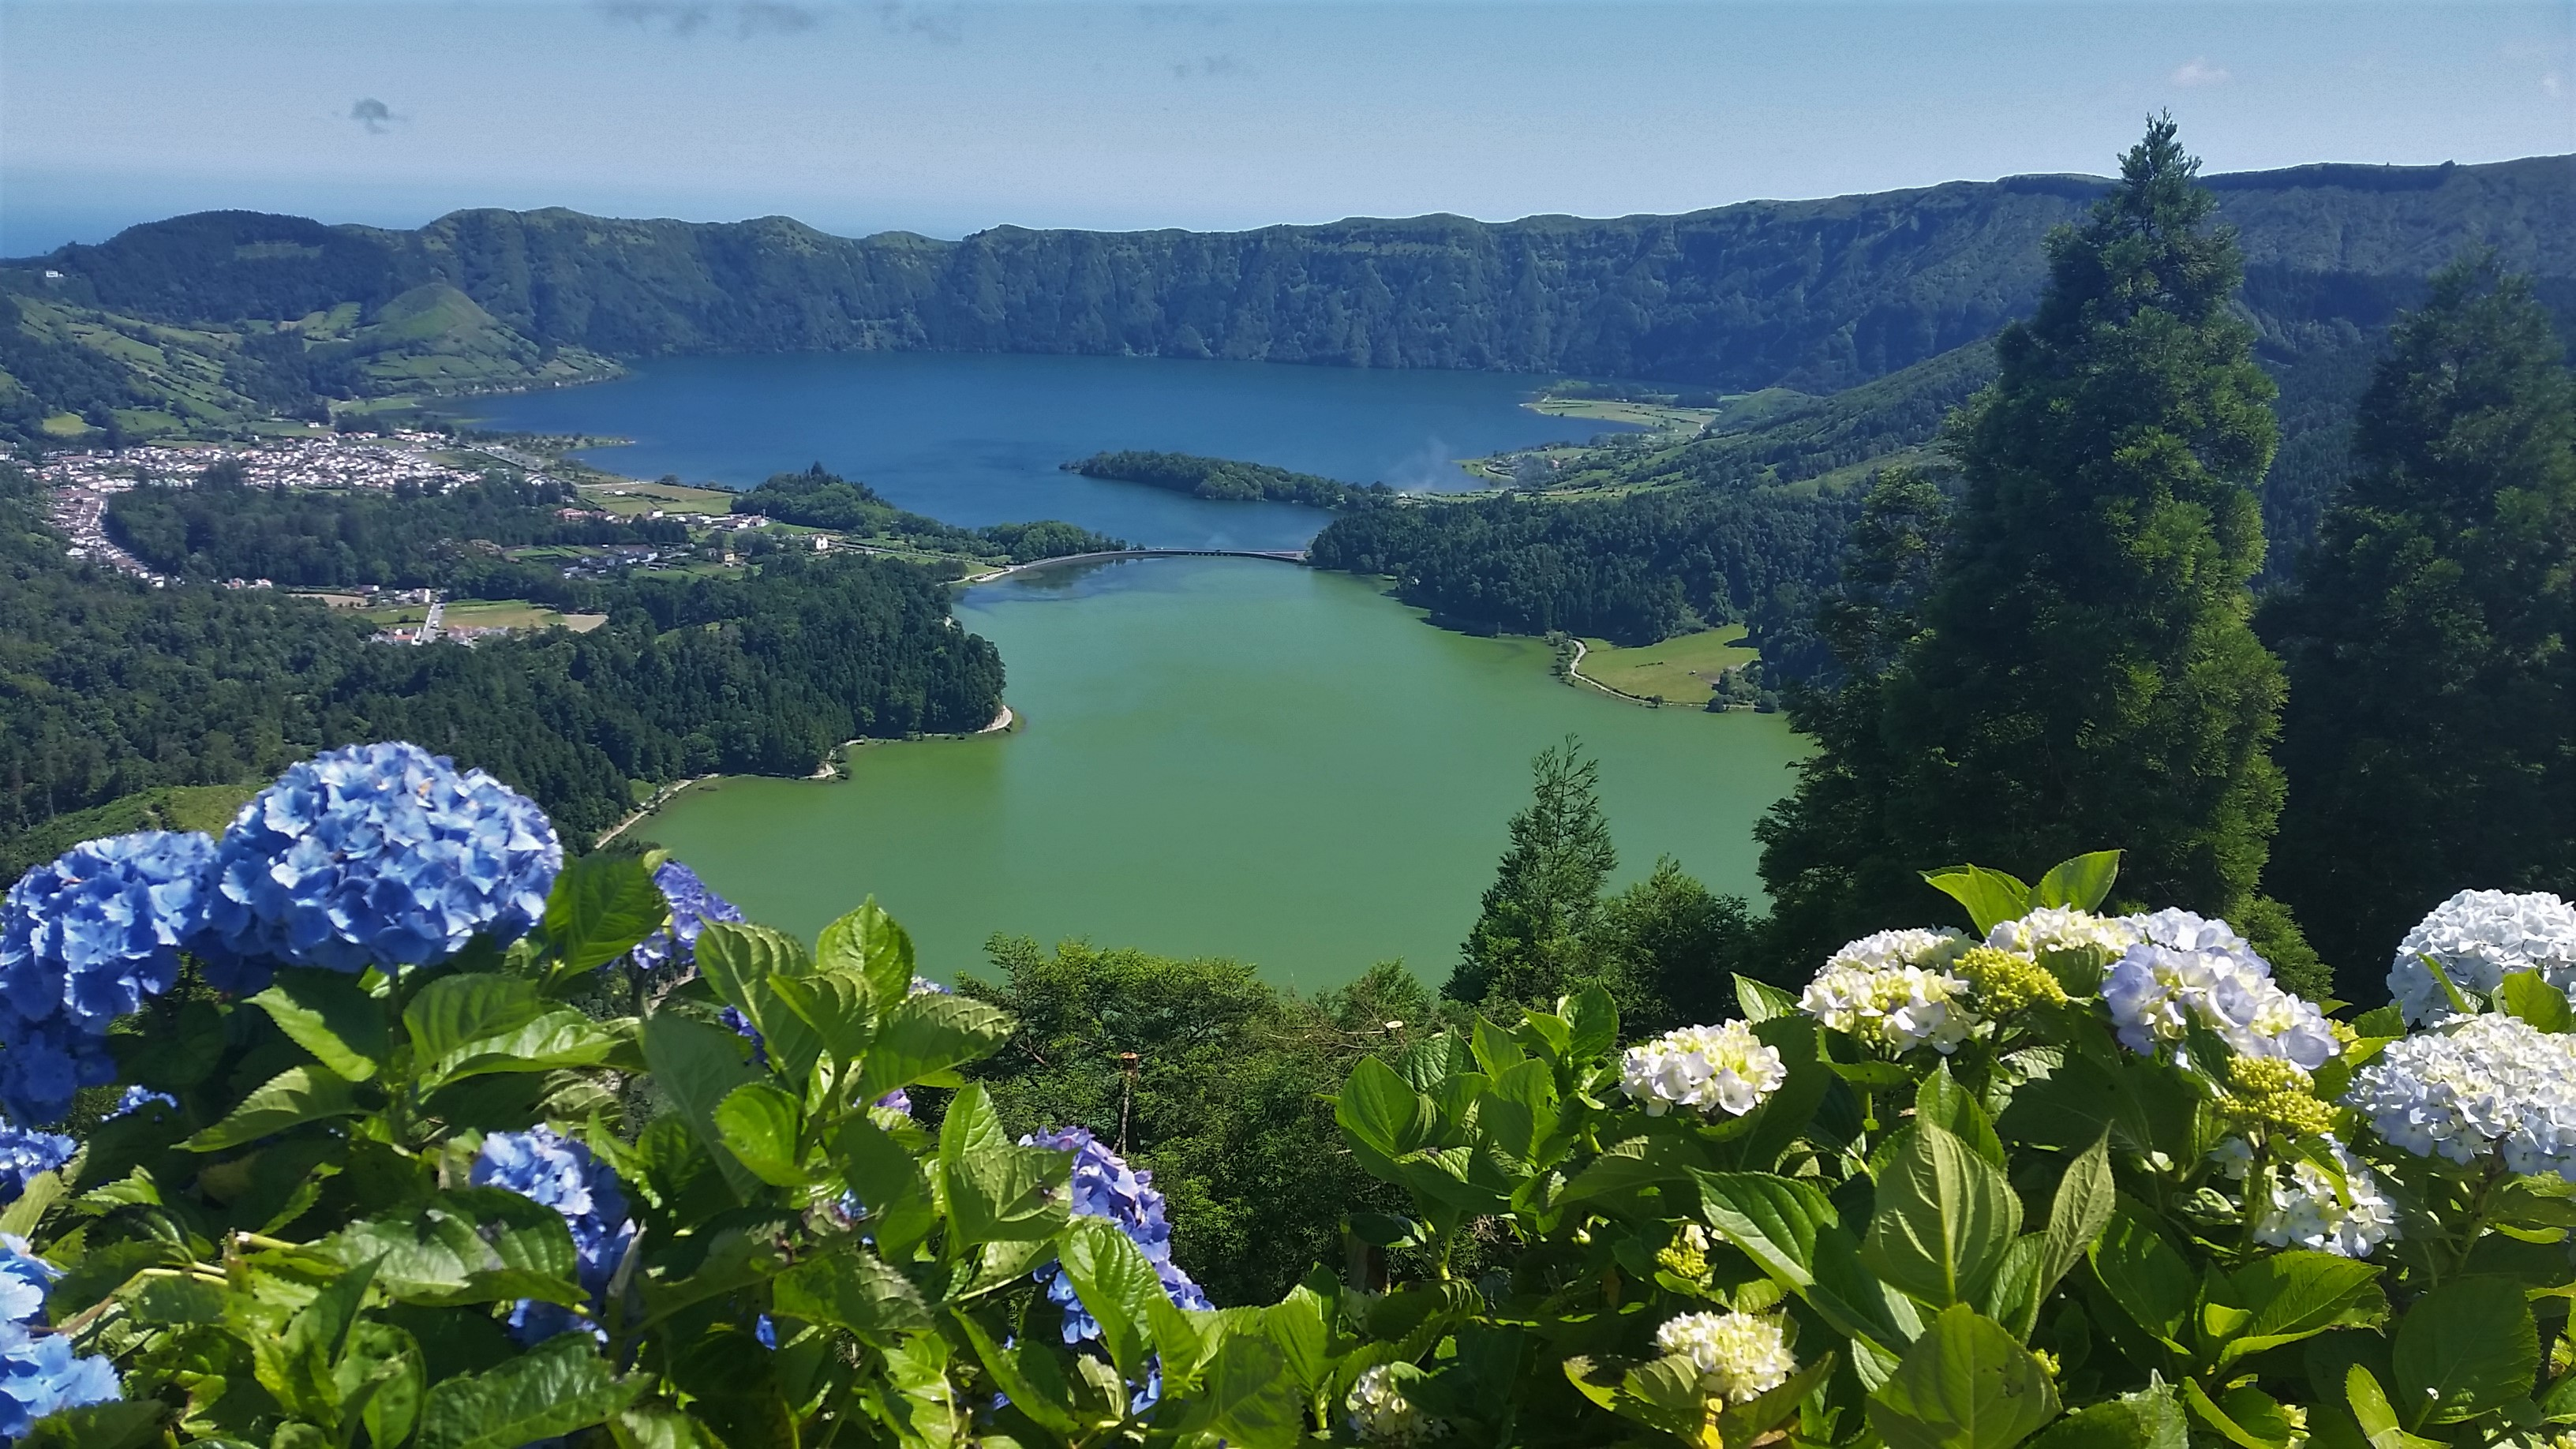 Private Tour # 1 - Sete Cidades Lakes & Fire Lake